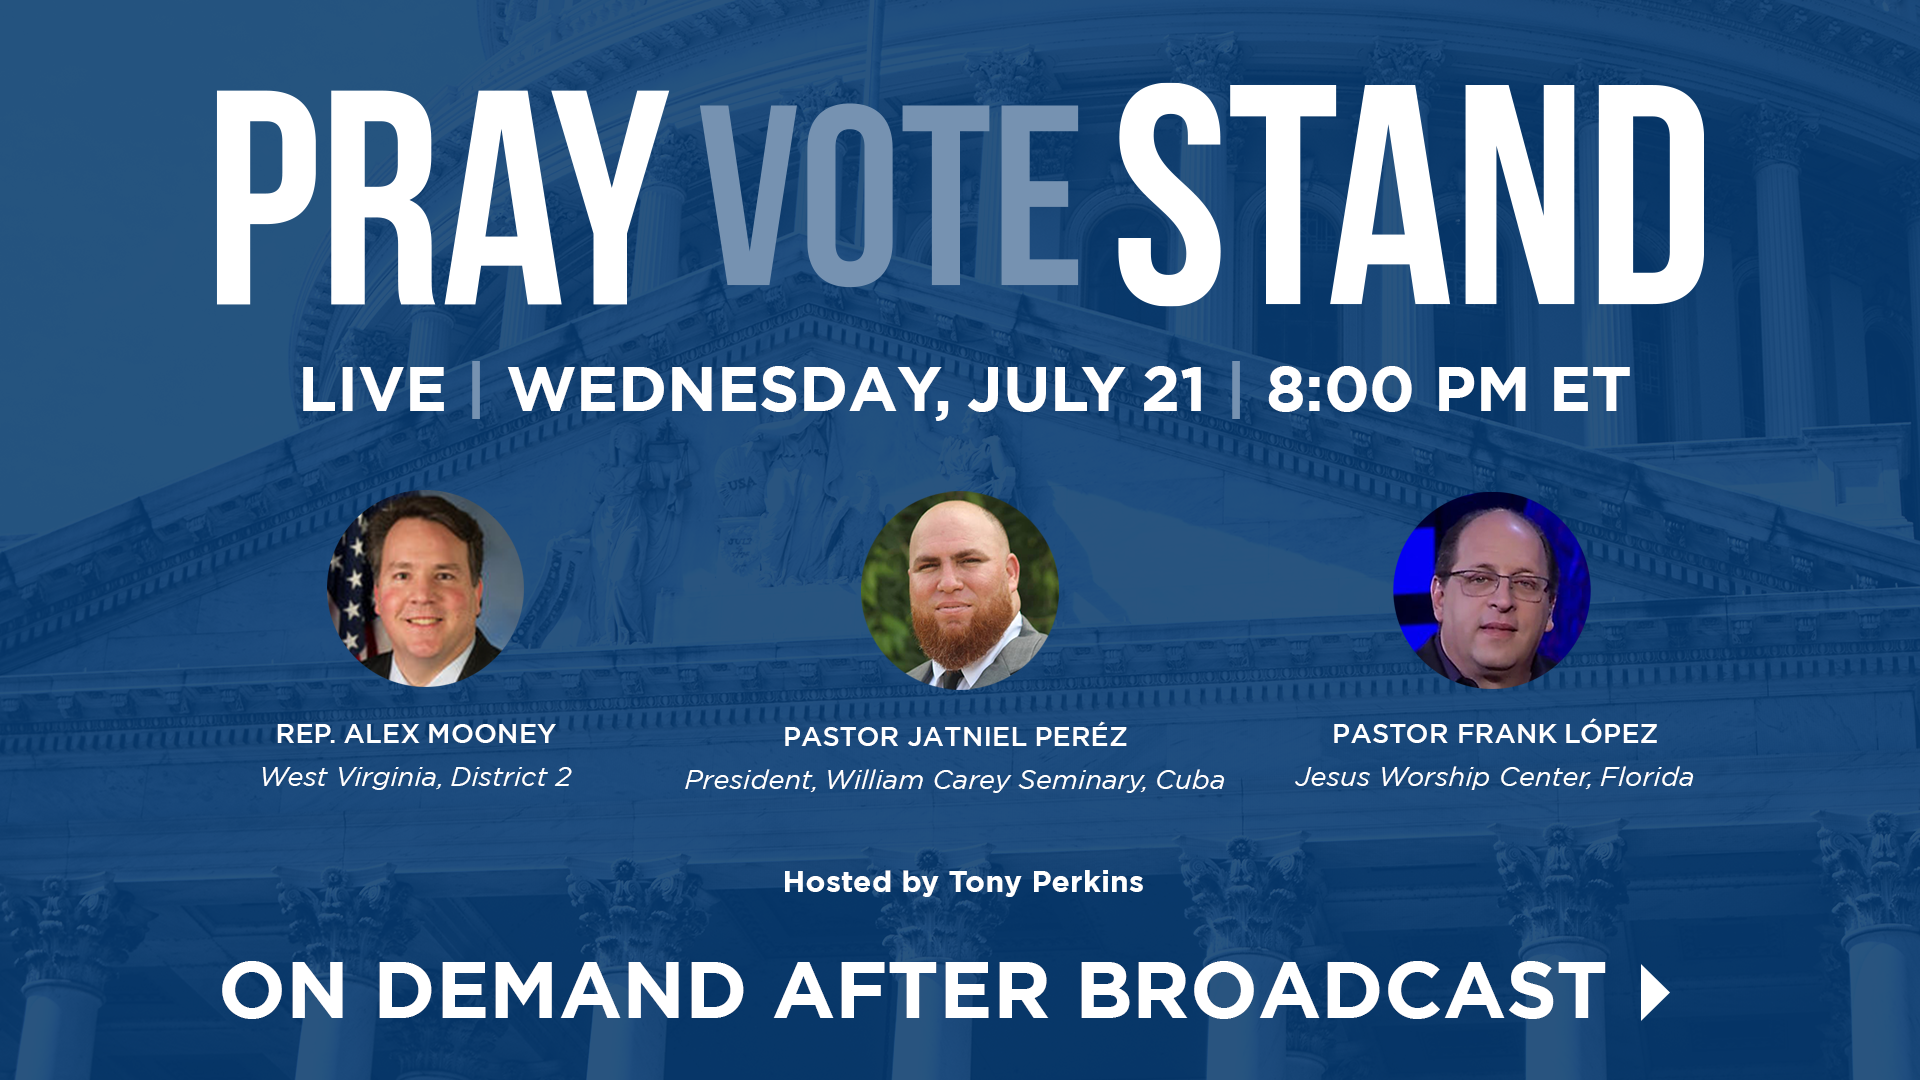 Watch Pray Vote Stand - Live Wednesdays at 8:00 PM ET and on demand following the broadcast